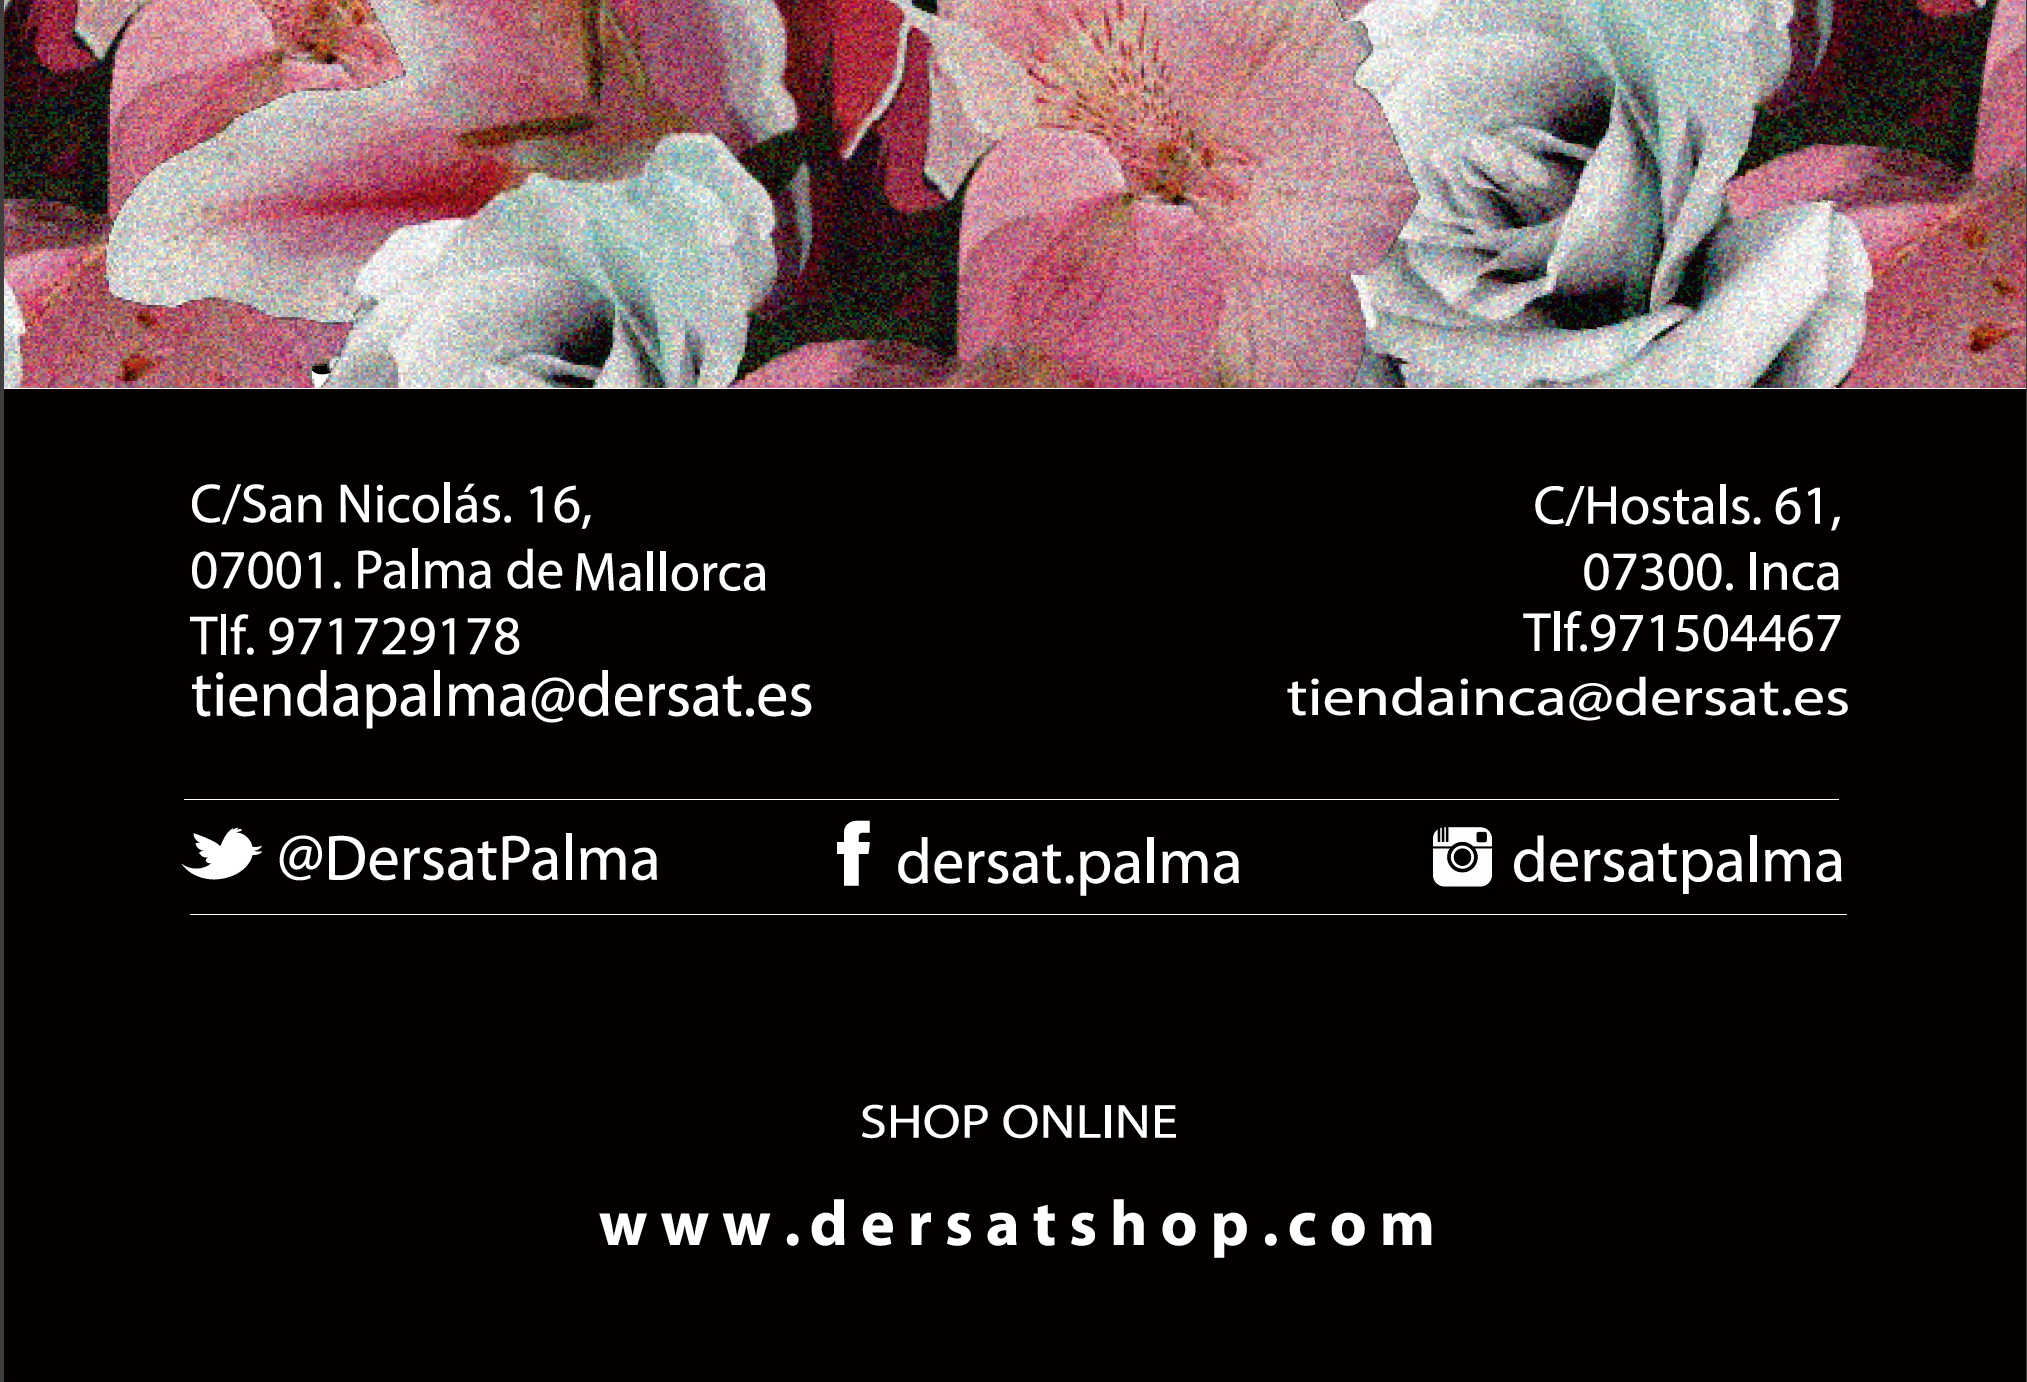 Amparo collazo business cards newsletters for clothing store business cards newsletters for dersat a clothing store from mallorca reheart Gallery